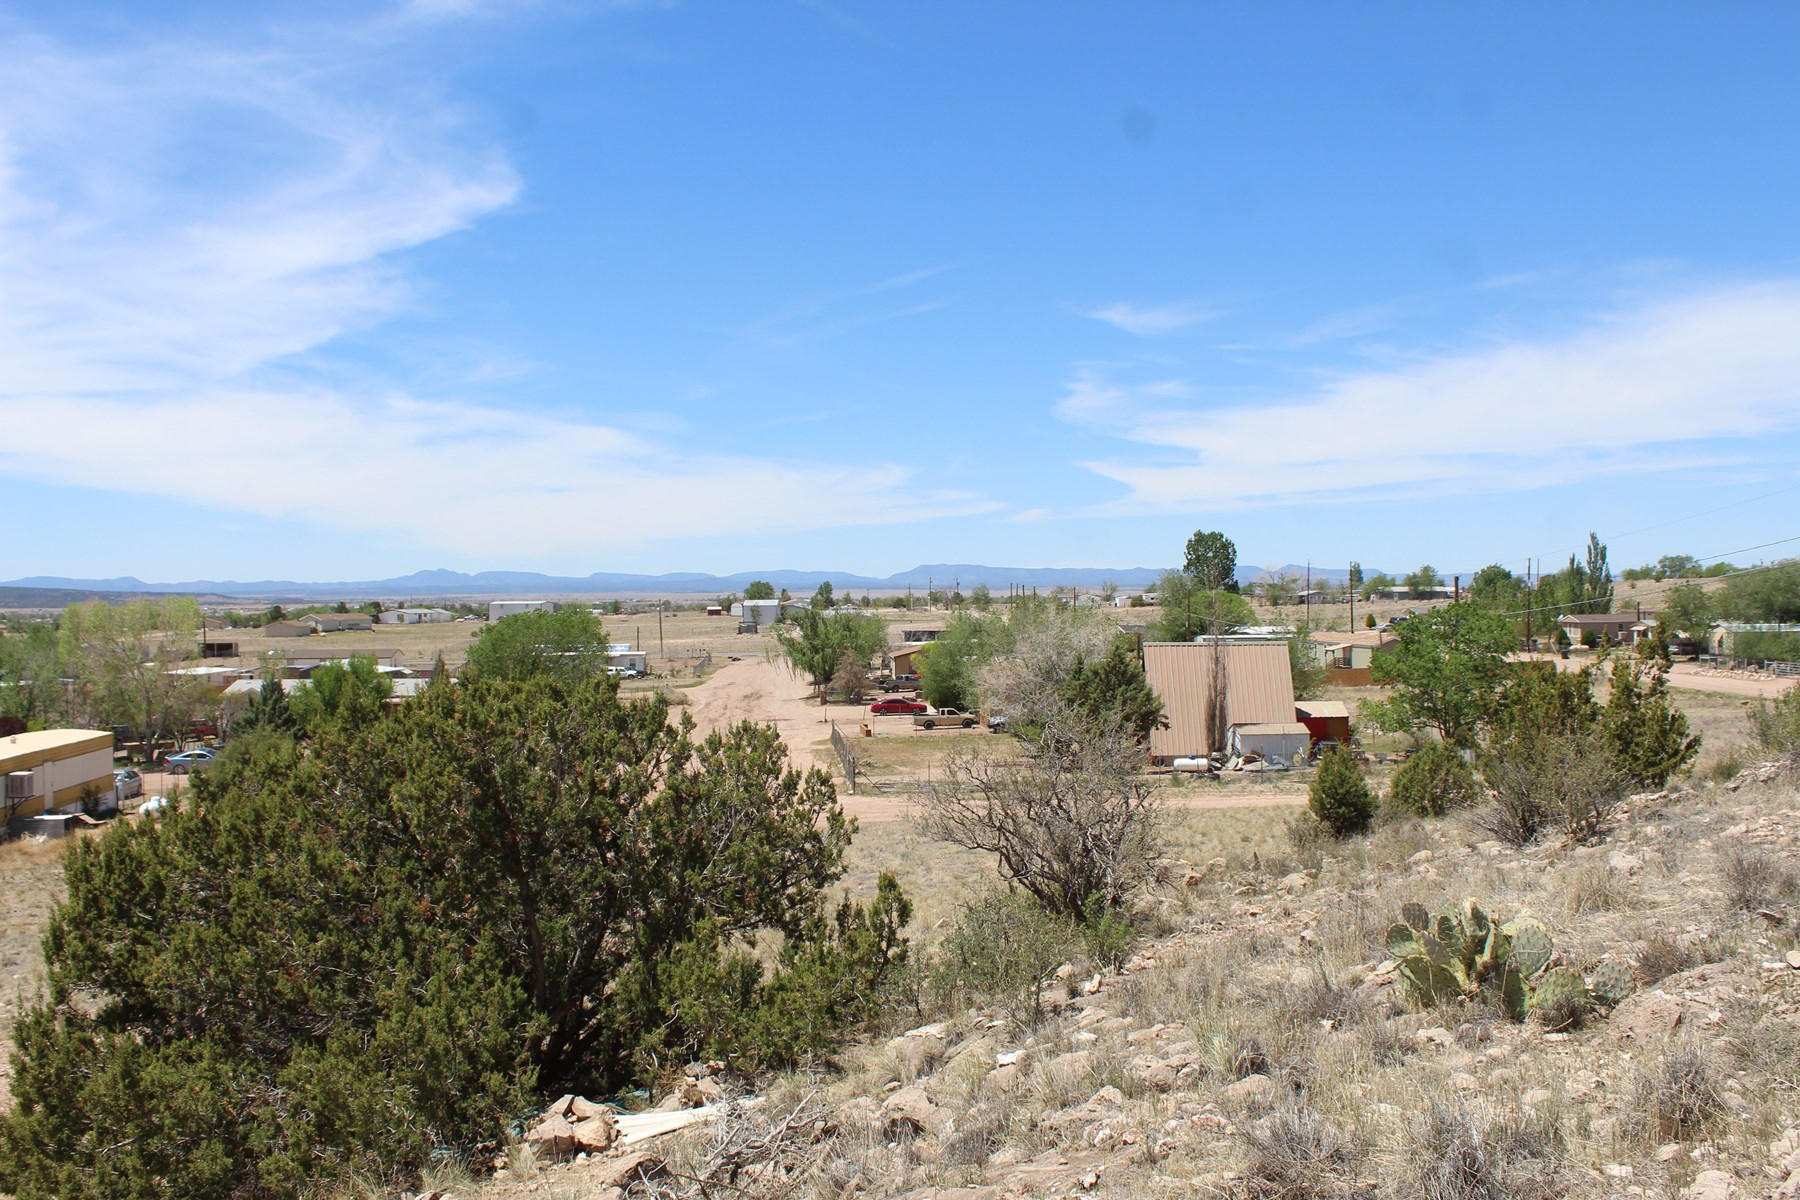 For Sale Rural Lot in Paulden, AZ Great Mountain Views